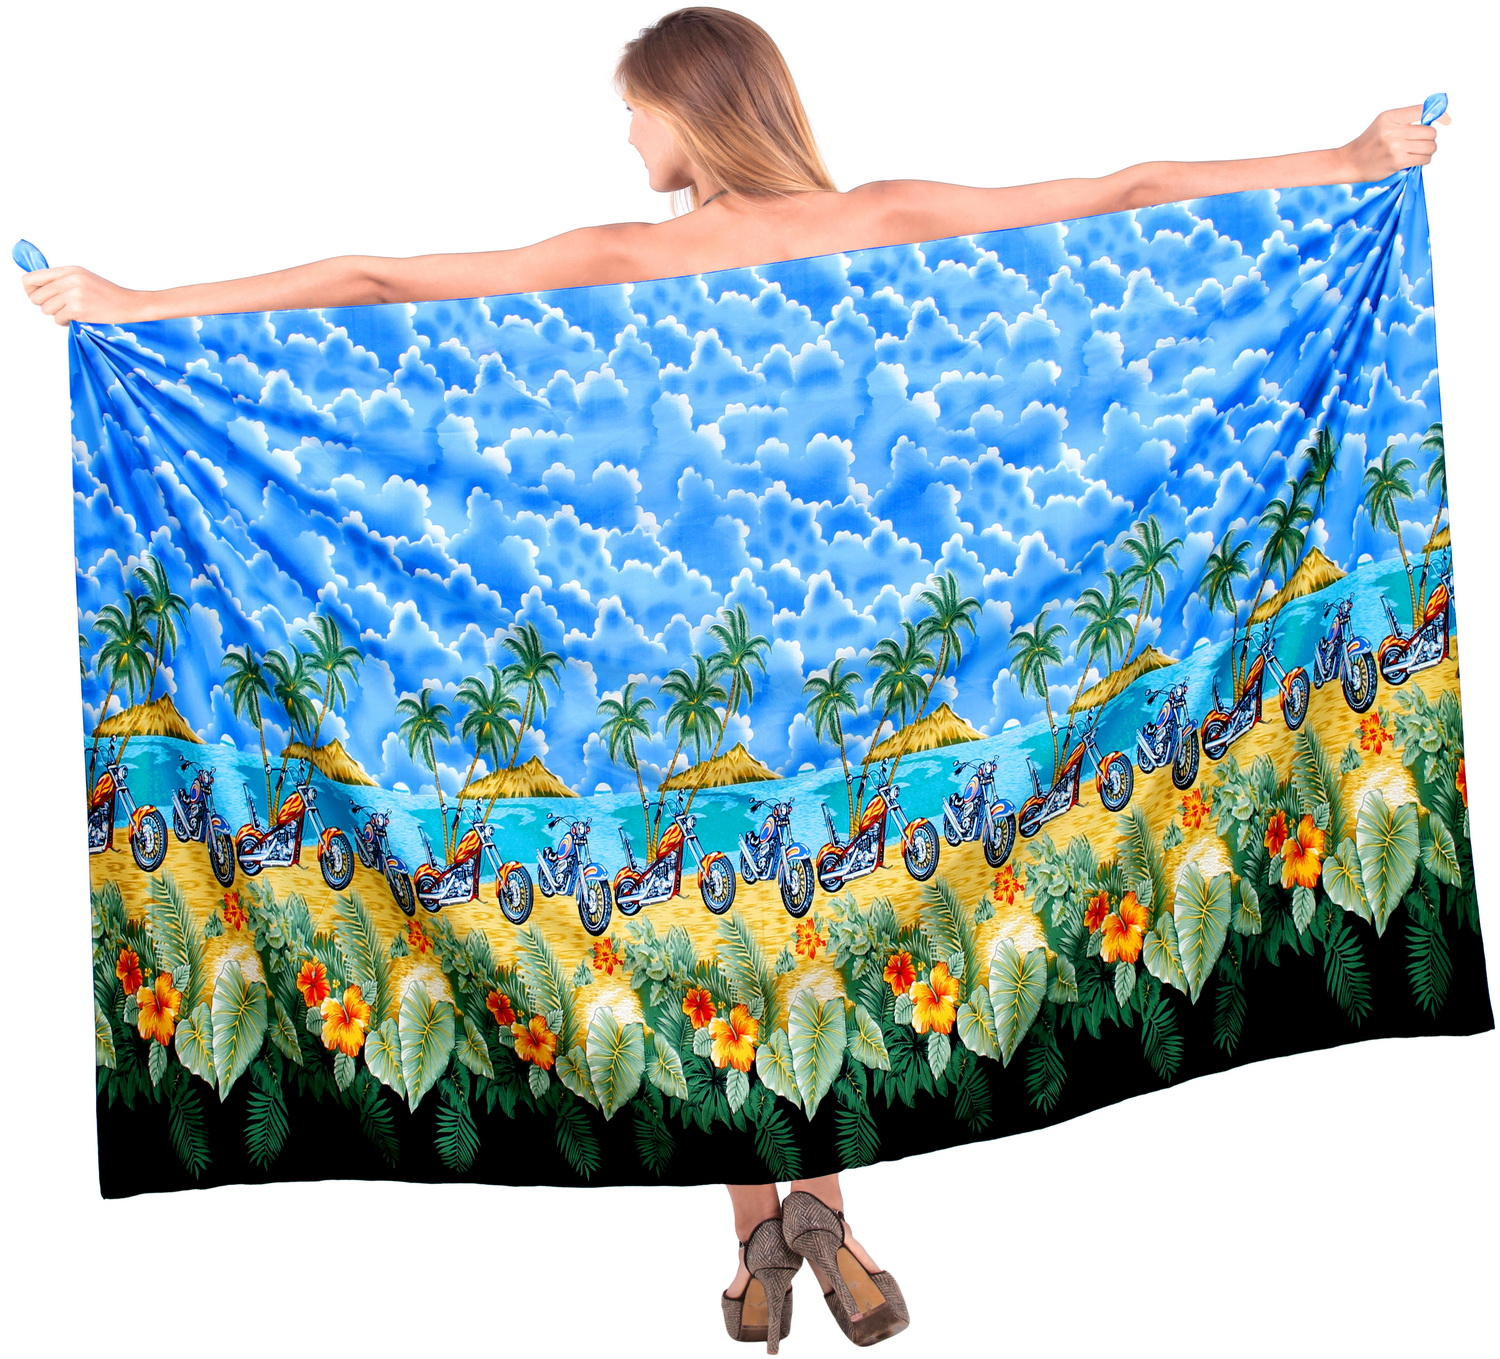 LA LEELA Beach Wrap Sarong Bathing Swimsuit cover up Dress Women Pareo Printed